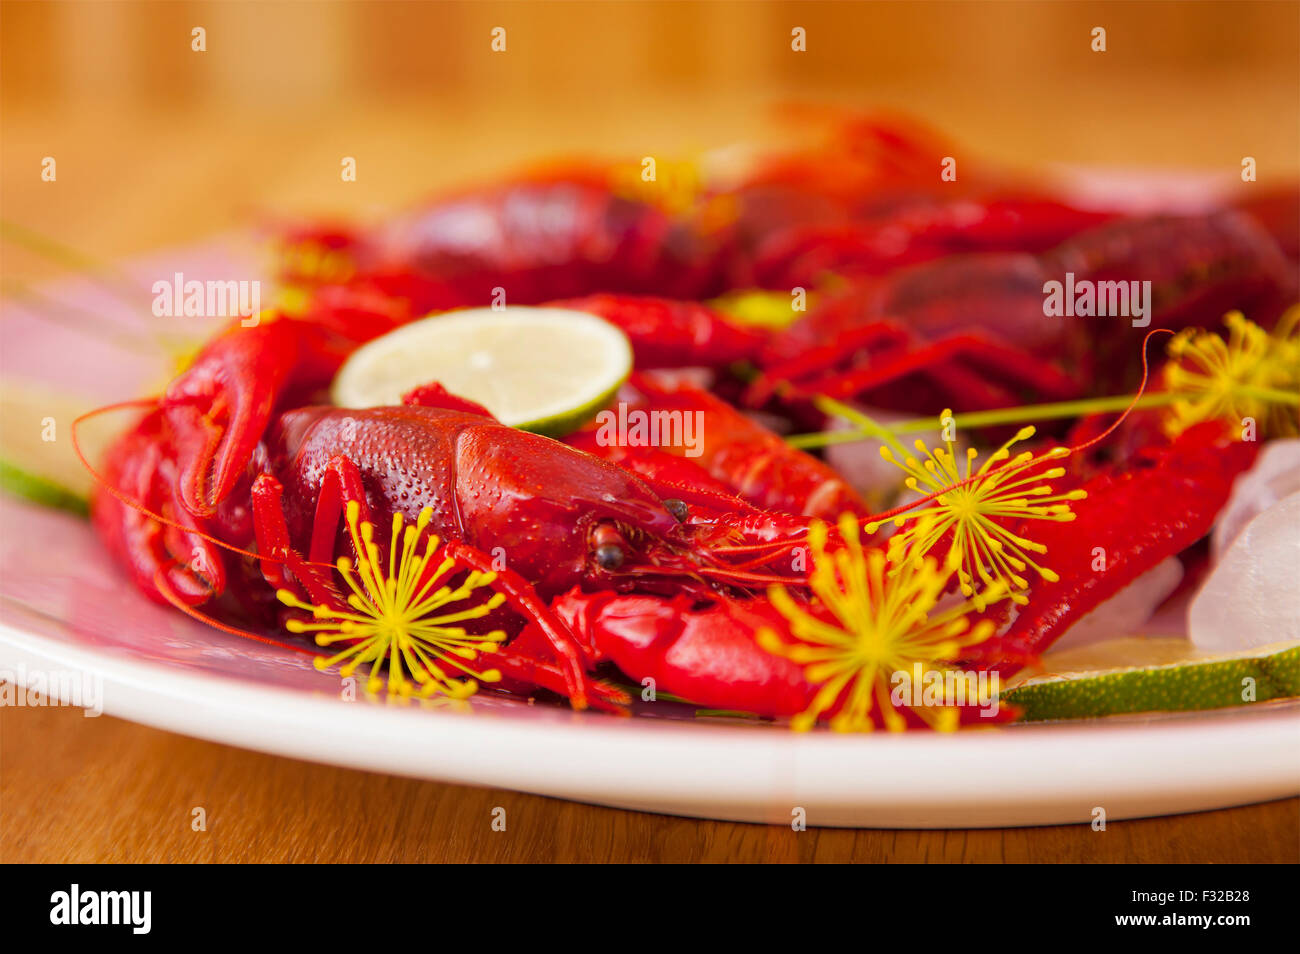 Image of a plate of freshly caught crayfish. - Stock Image